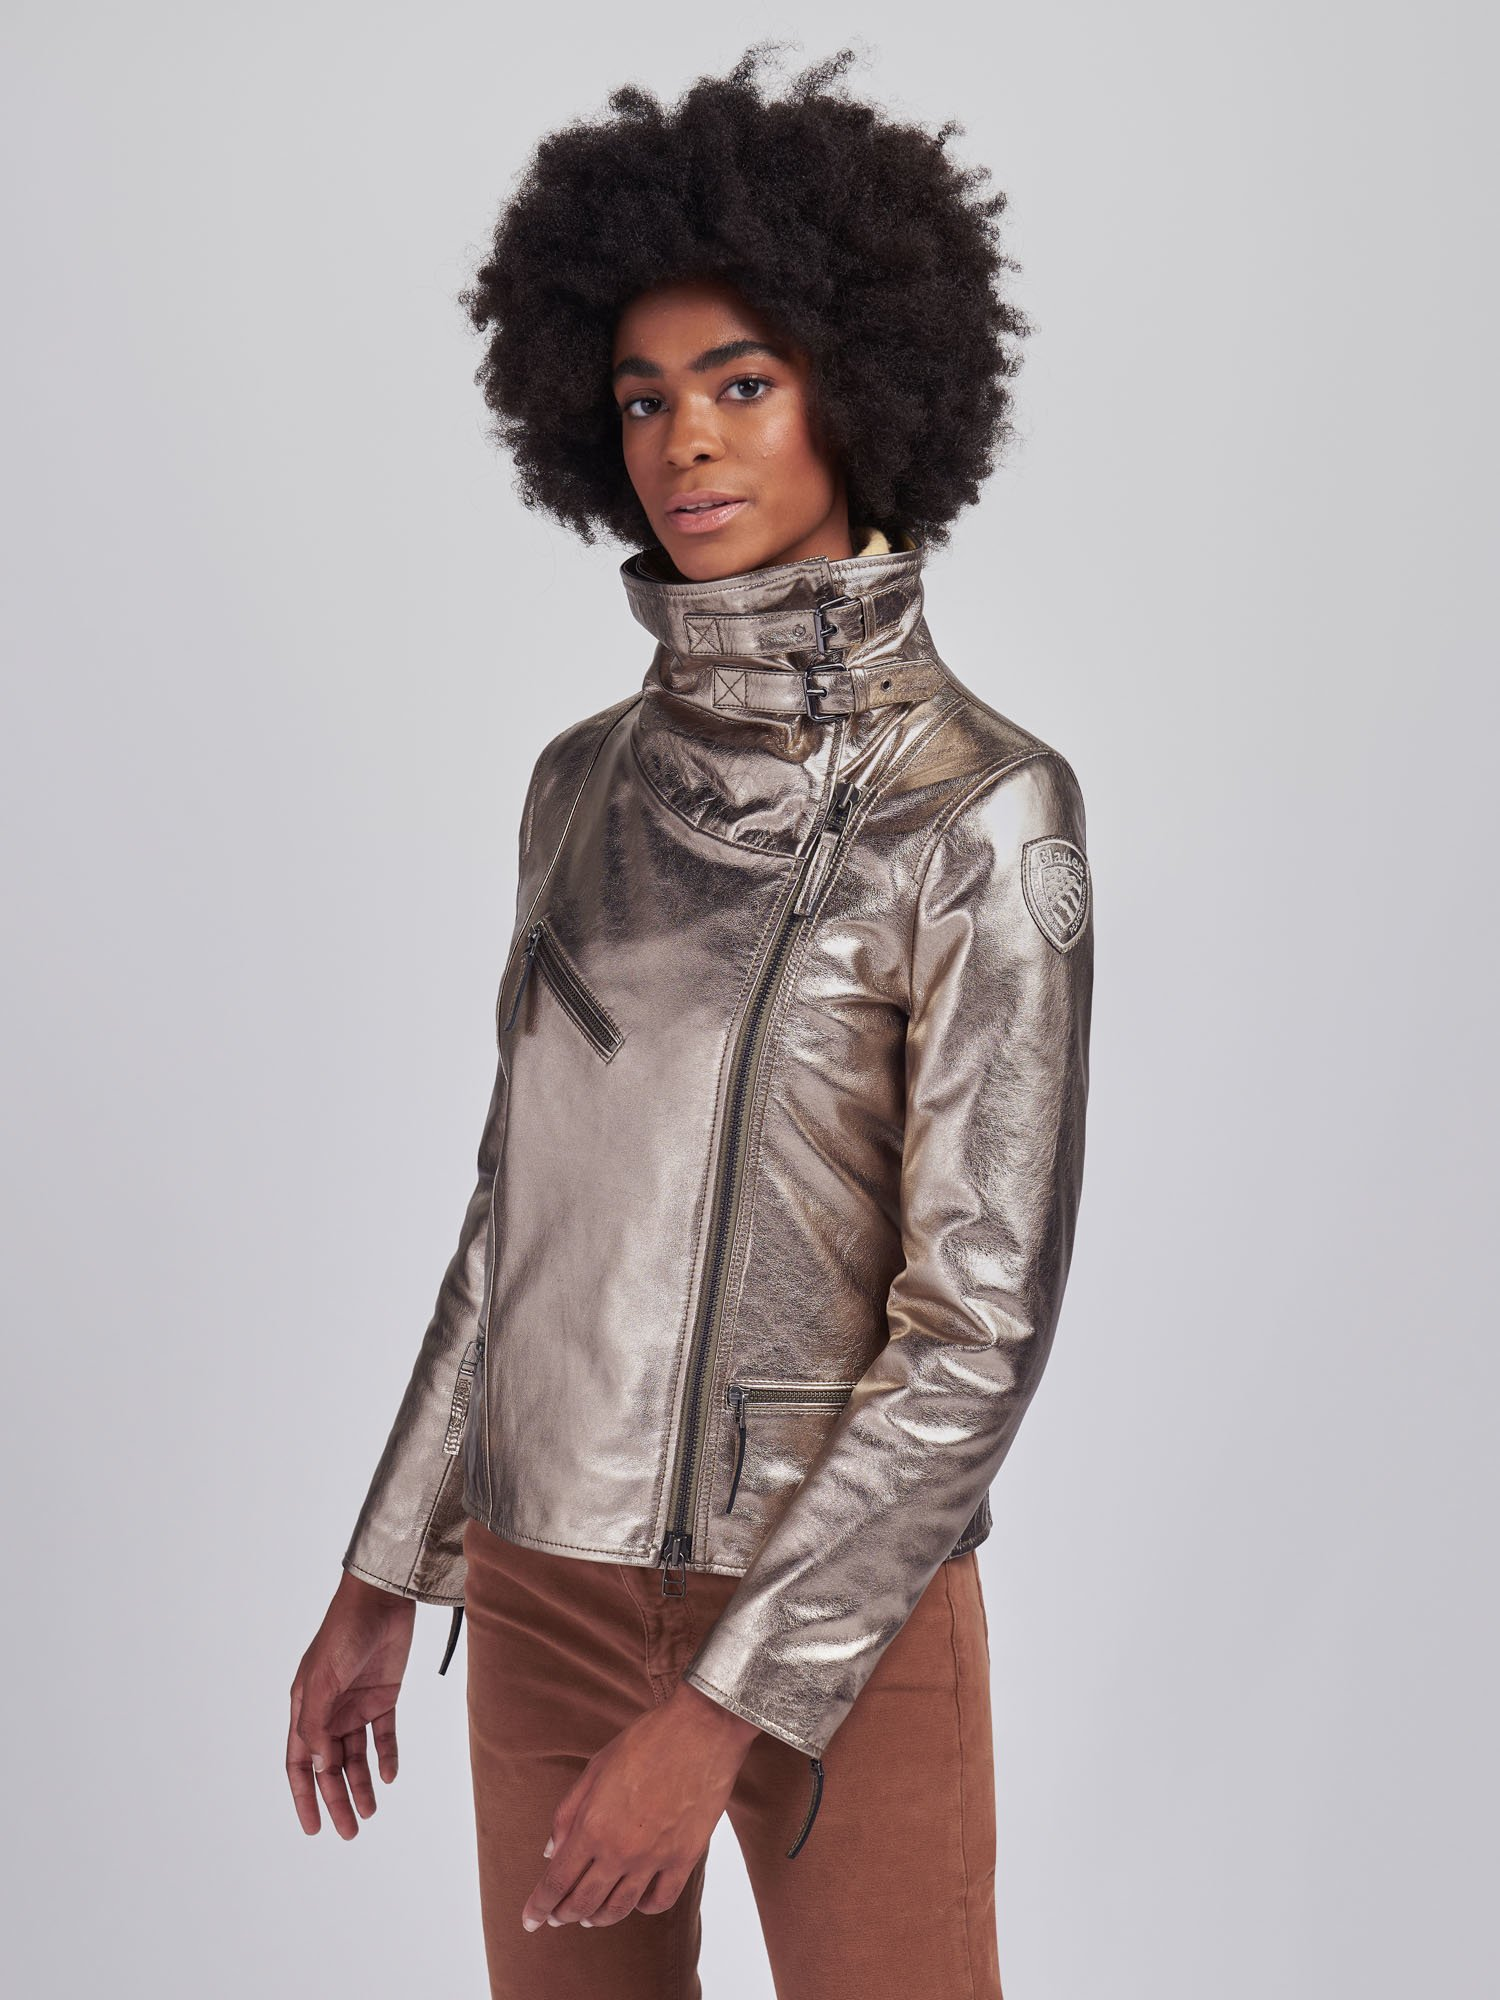 SUSAN METALLIC LEATHER BIKER JACKET - Blauer